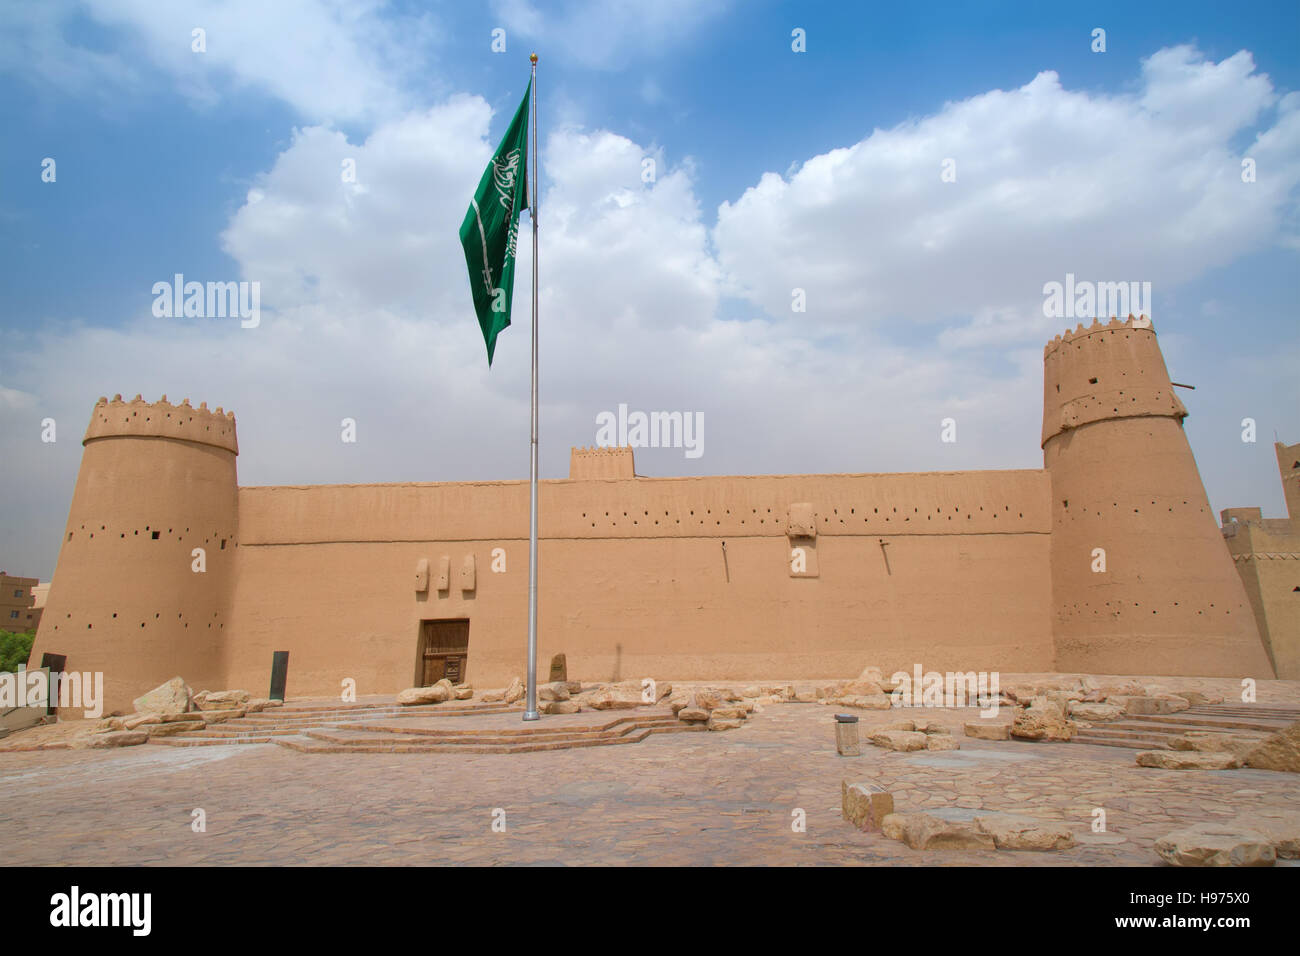 the history of architecture in saudi arabia and the masmak fort Masmak citadel: great place, one time visit - see 441 traveller reviews, 314 candid photos, and great deals for riyadh, saudi arabia, at tripadvisor.